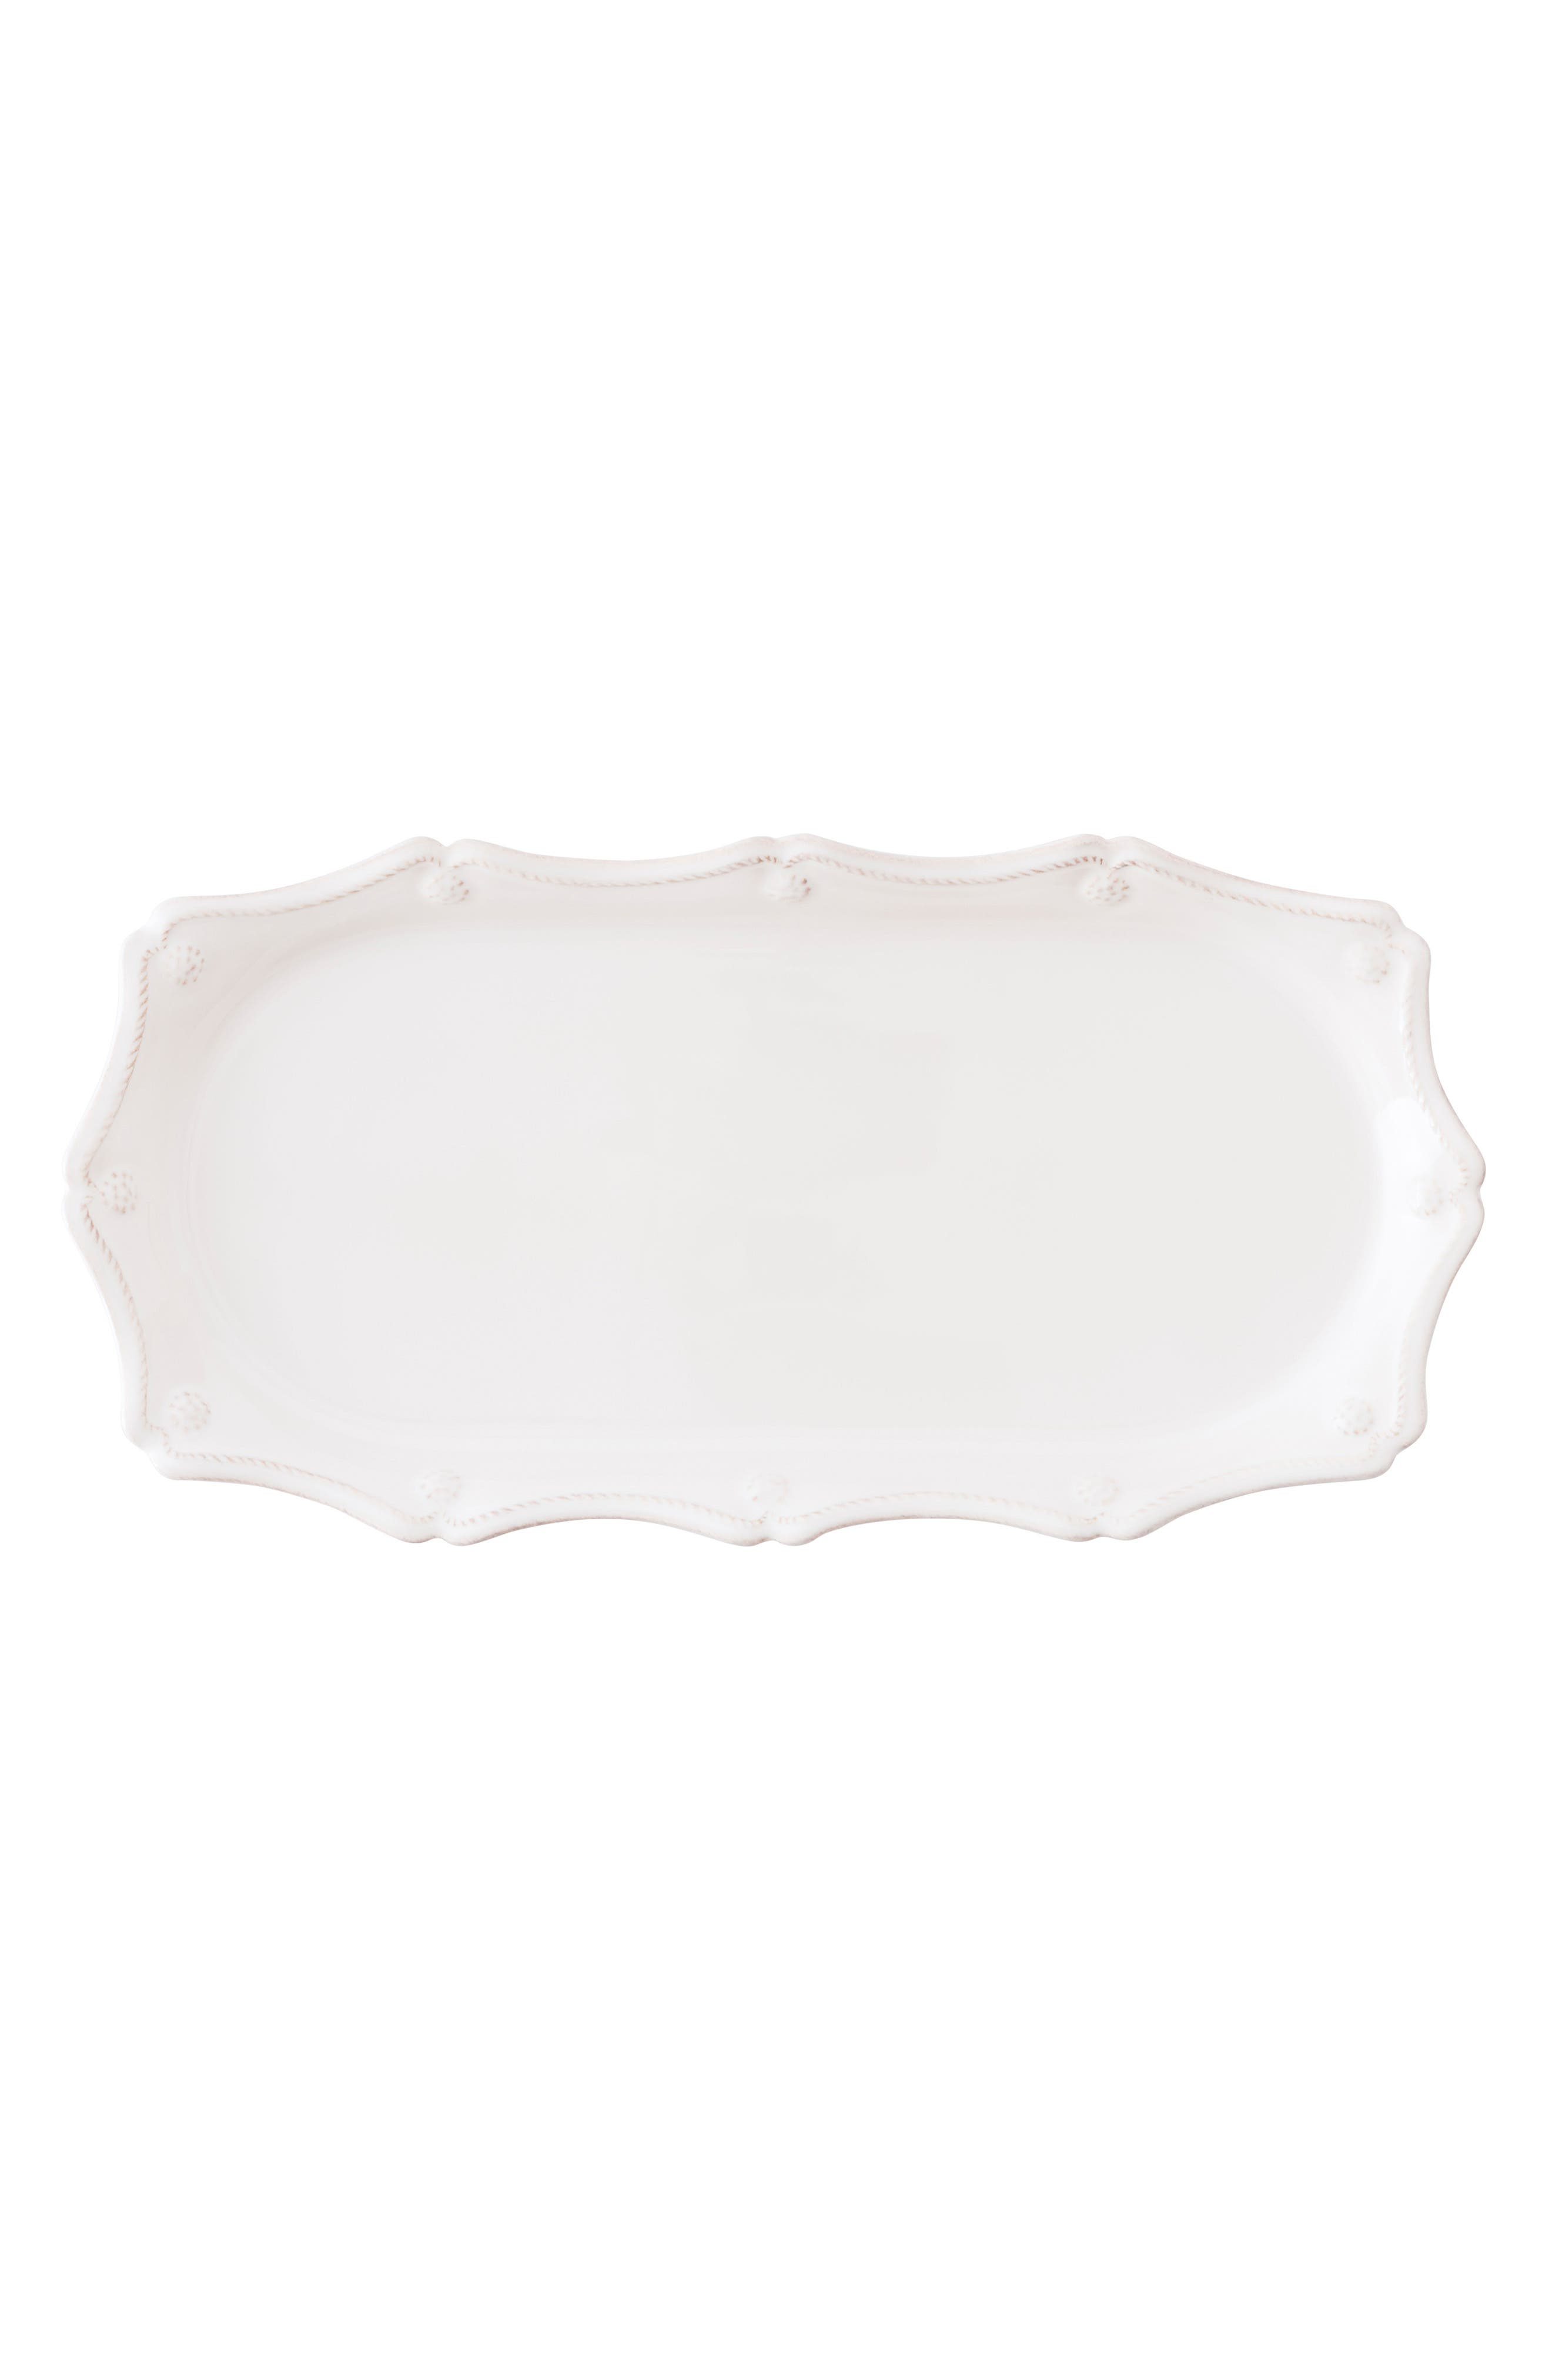 Juliska Berry & Thread Stoneware Hostess Tray